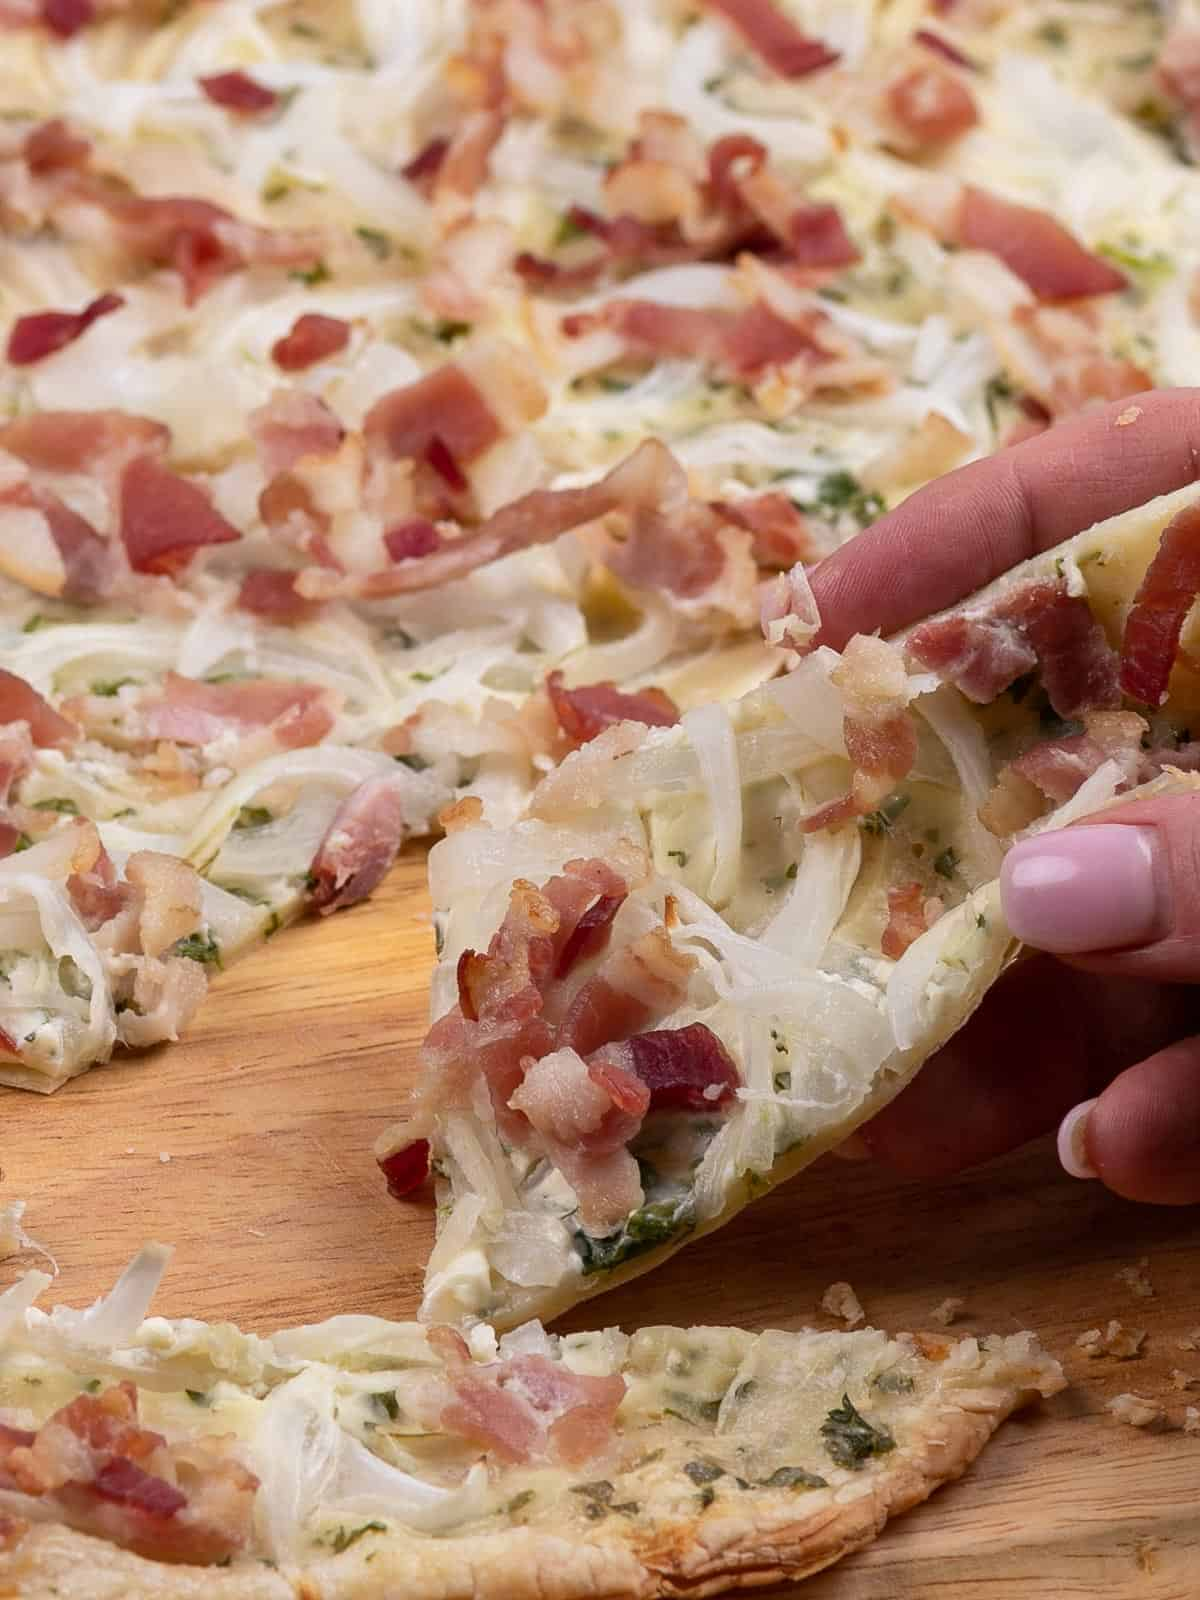 Taking a slice of freshly baked Flammkuchen